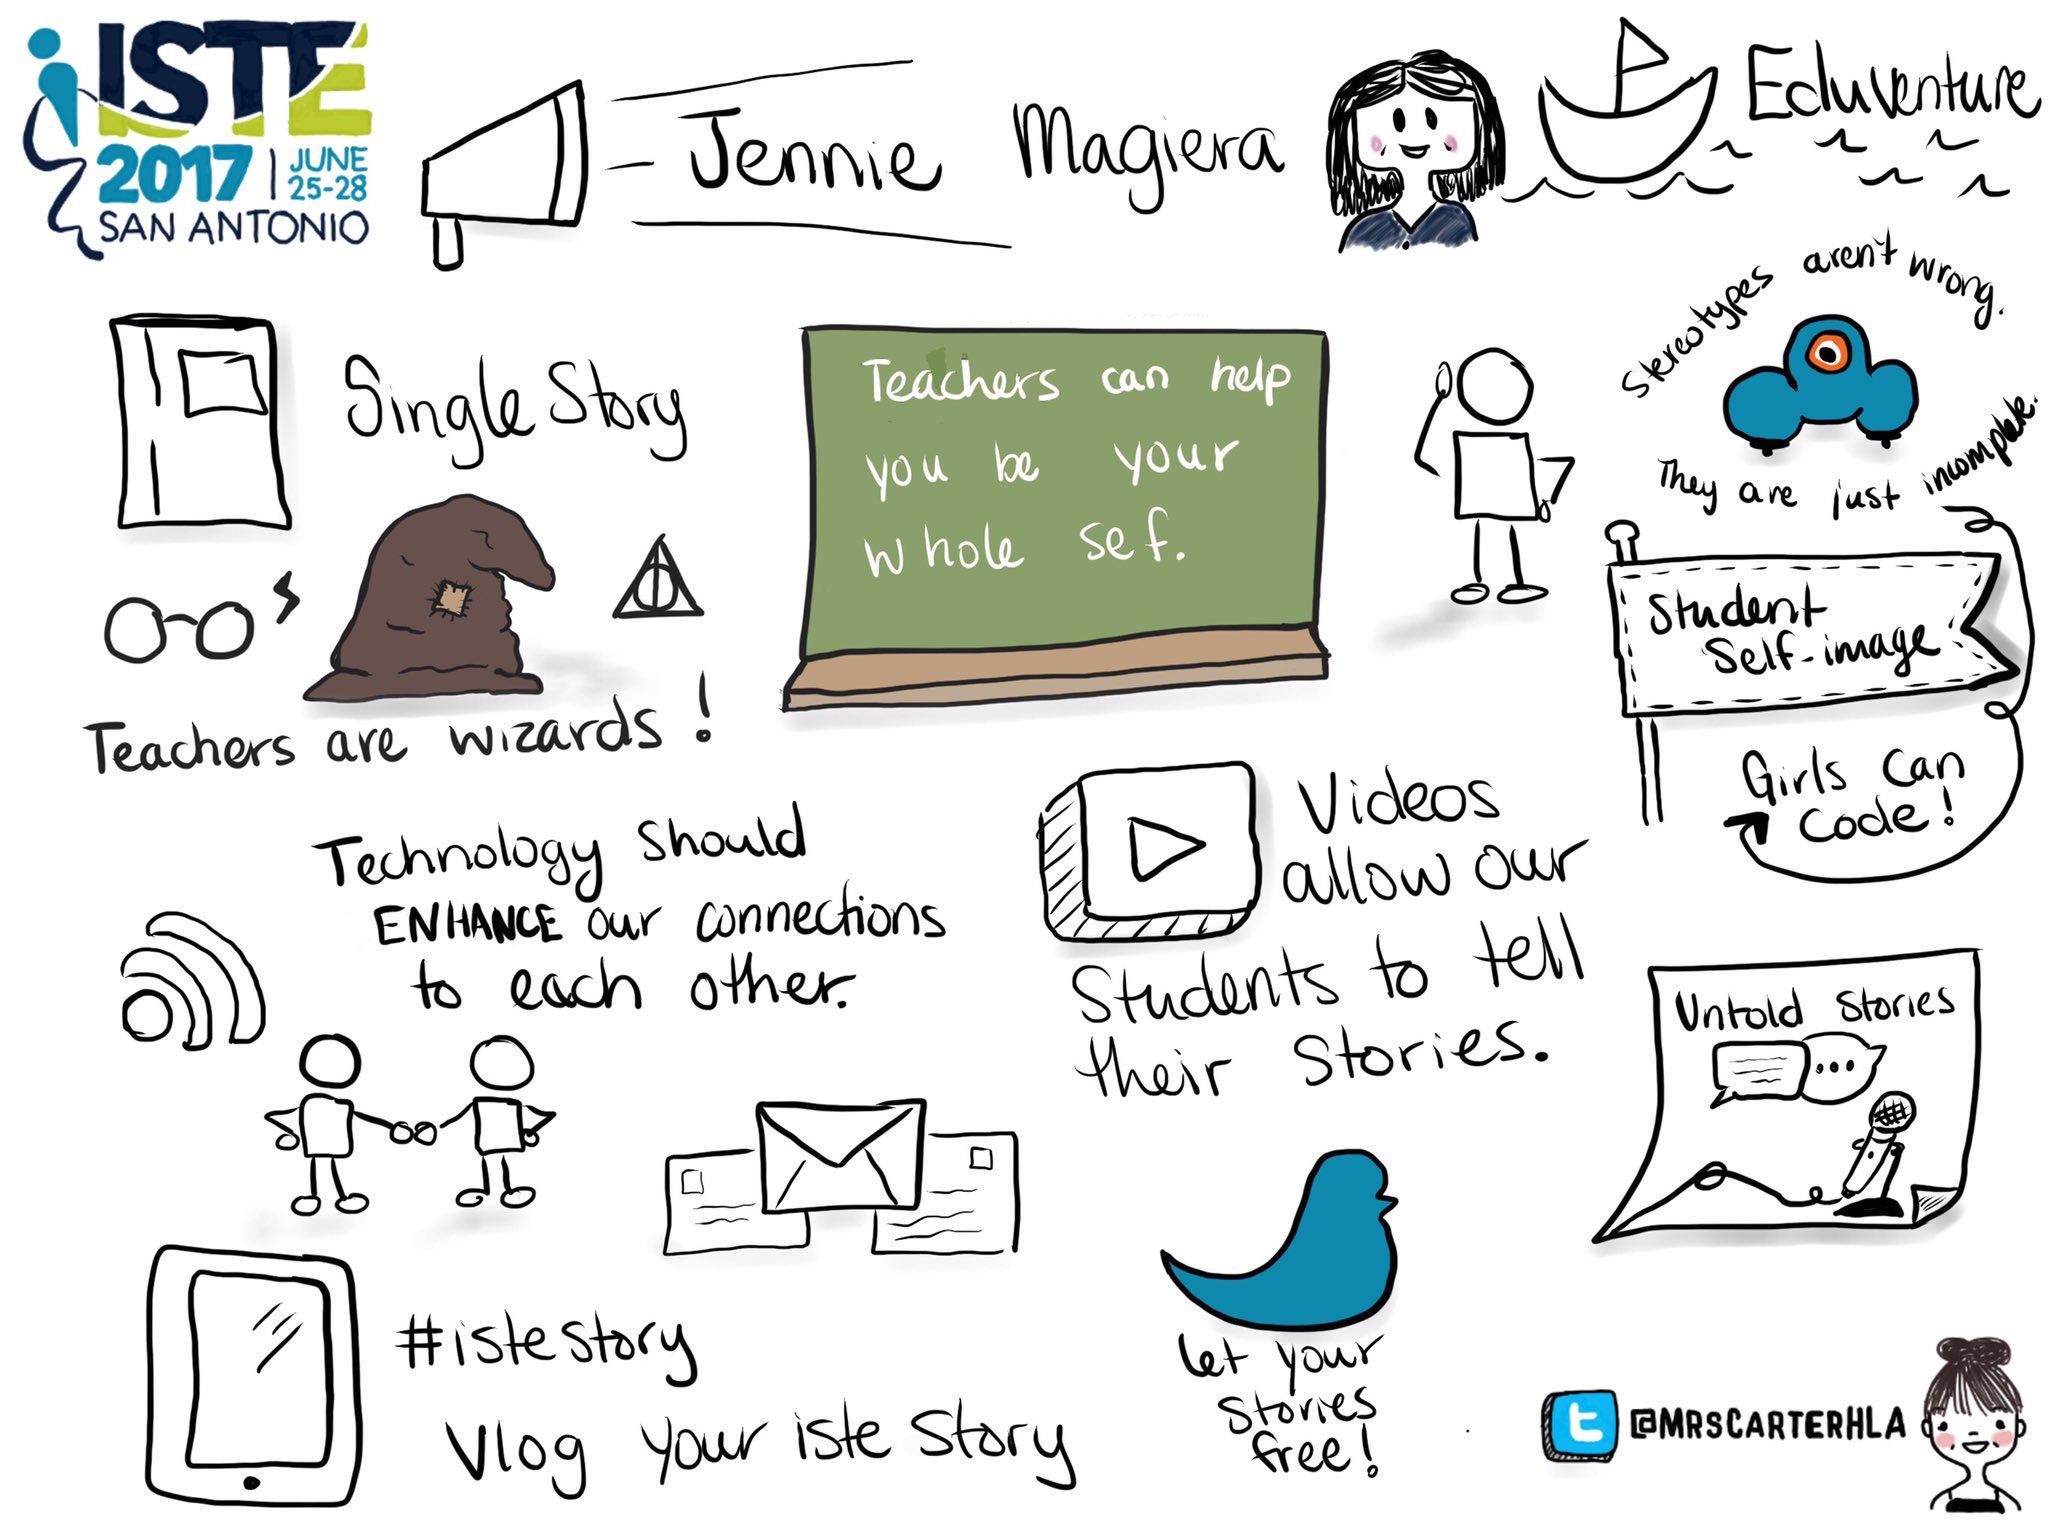 Great keynote this morning @MsMagiera #sketchiste #iste17 #bsdfutureready https://t.co/TJi3ODr7AR